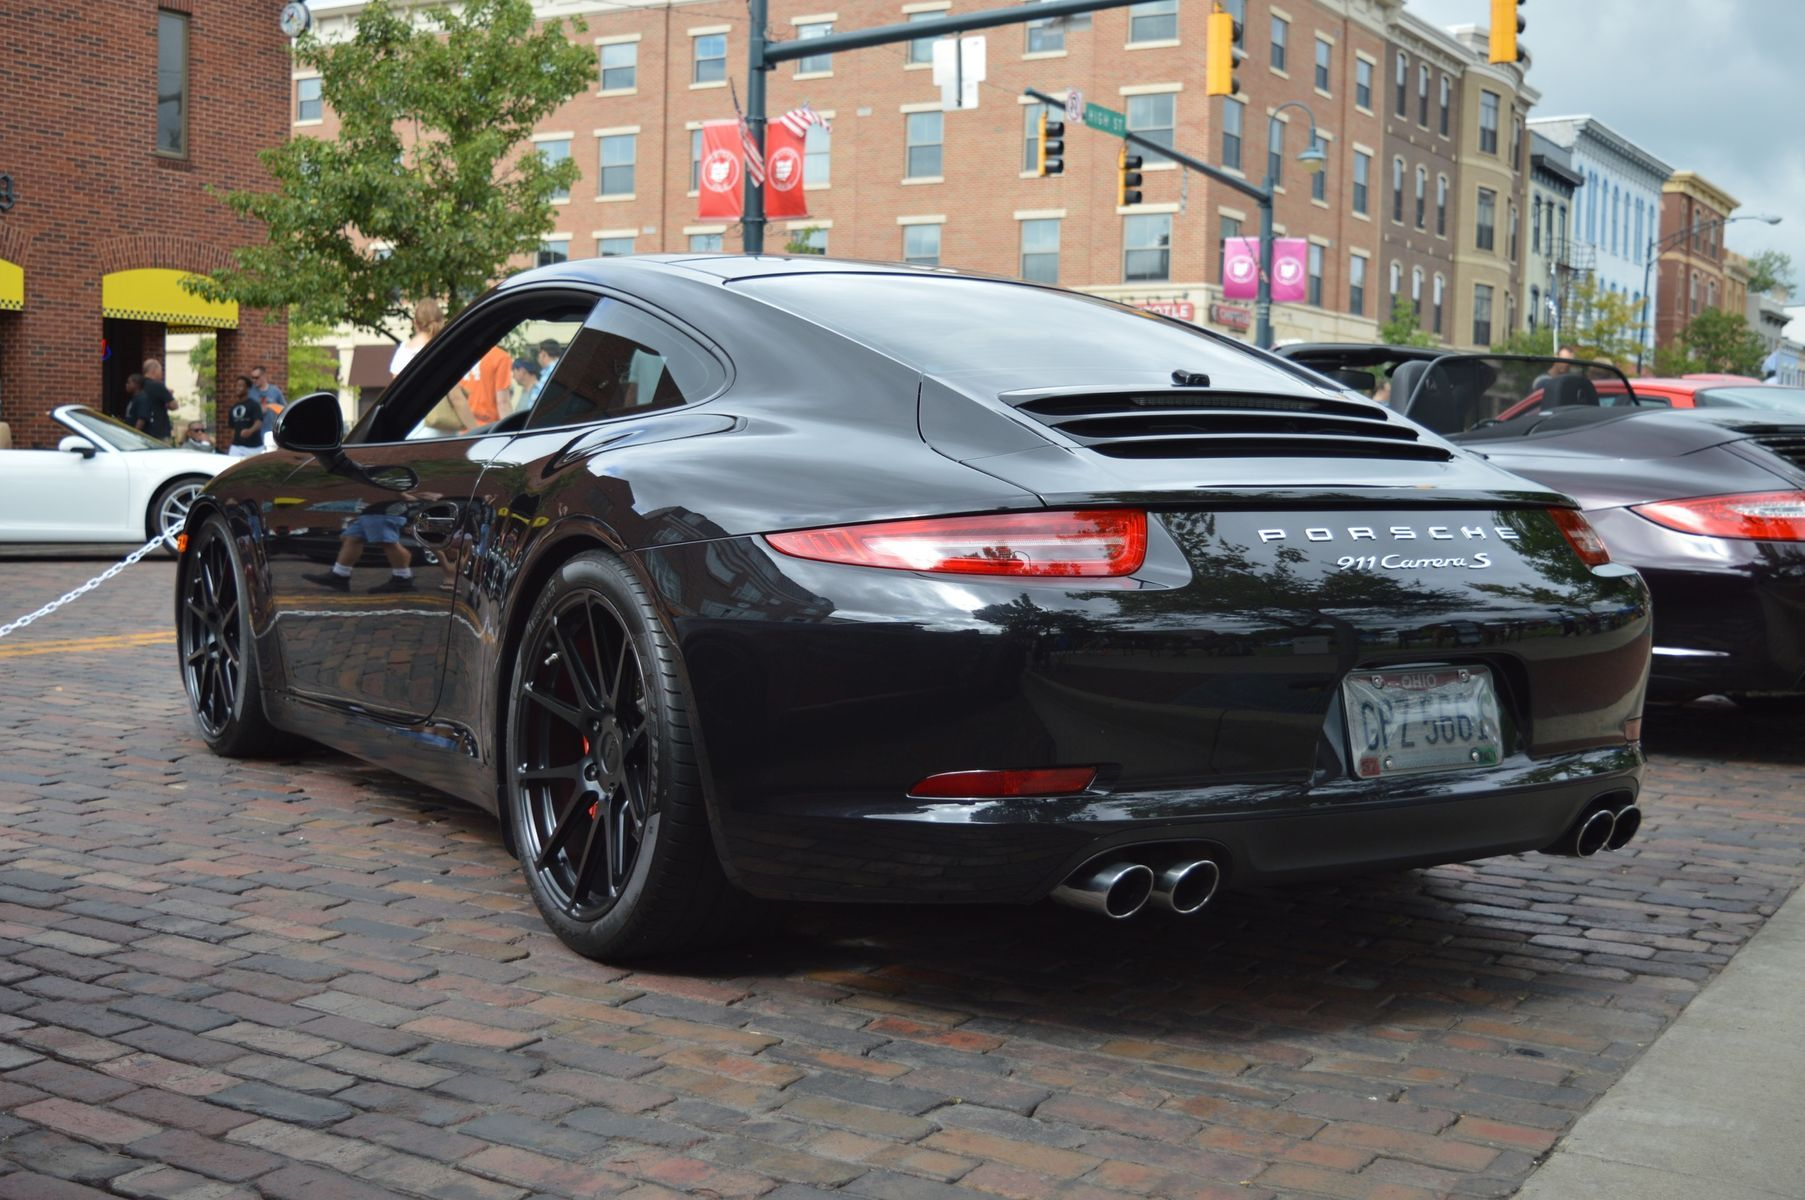 2012 Porsche 911 | Nicholas Kopp's Porsche 991 Carrera S on Forgeline One Piece Forged Monoblock GA1R Wheels